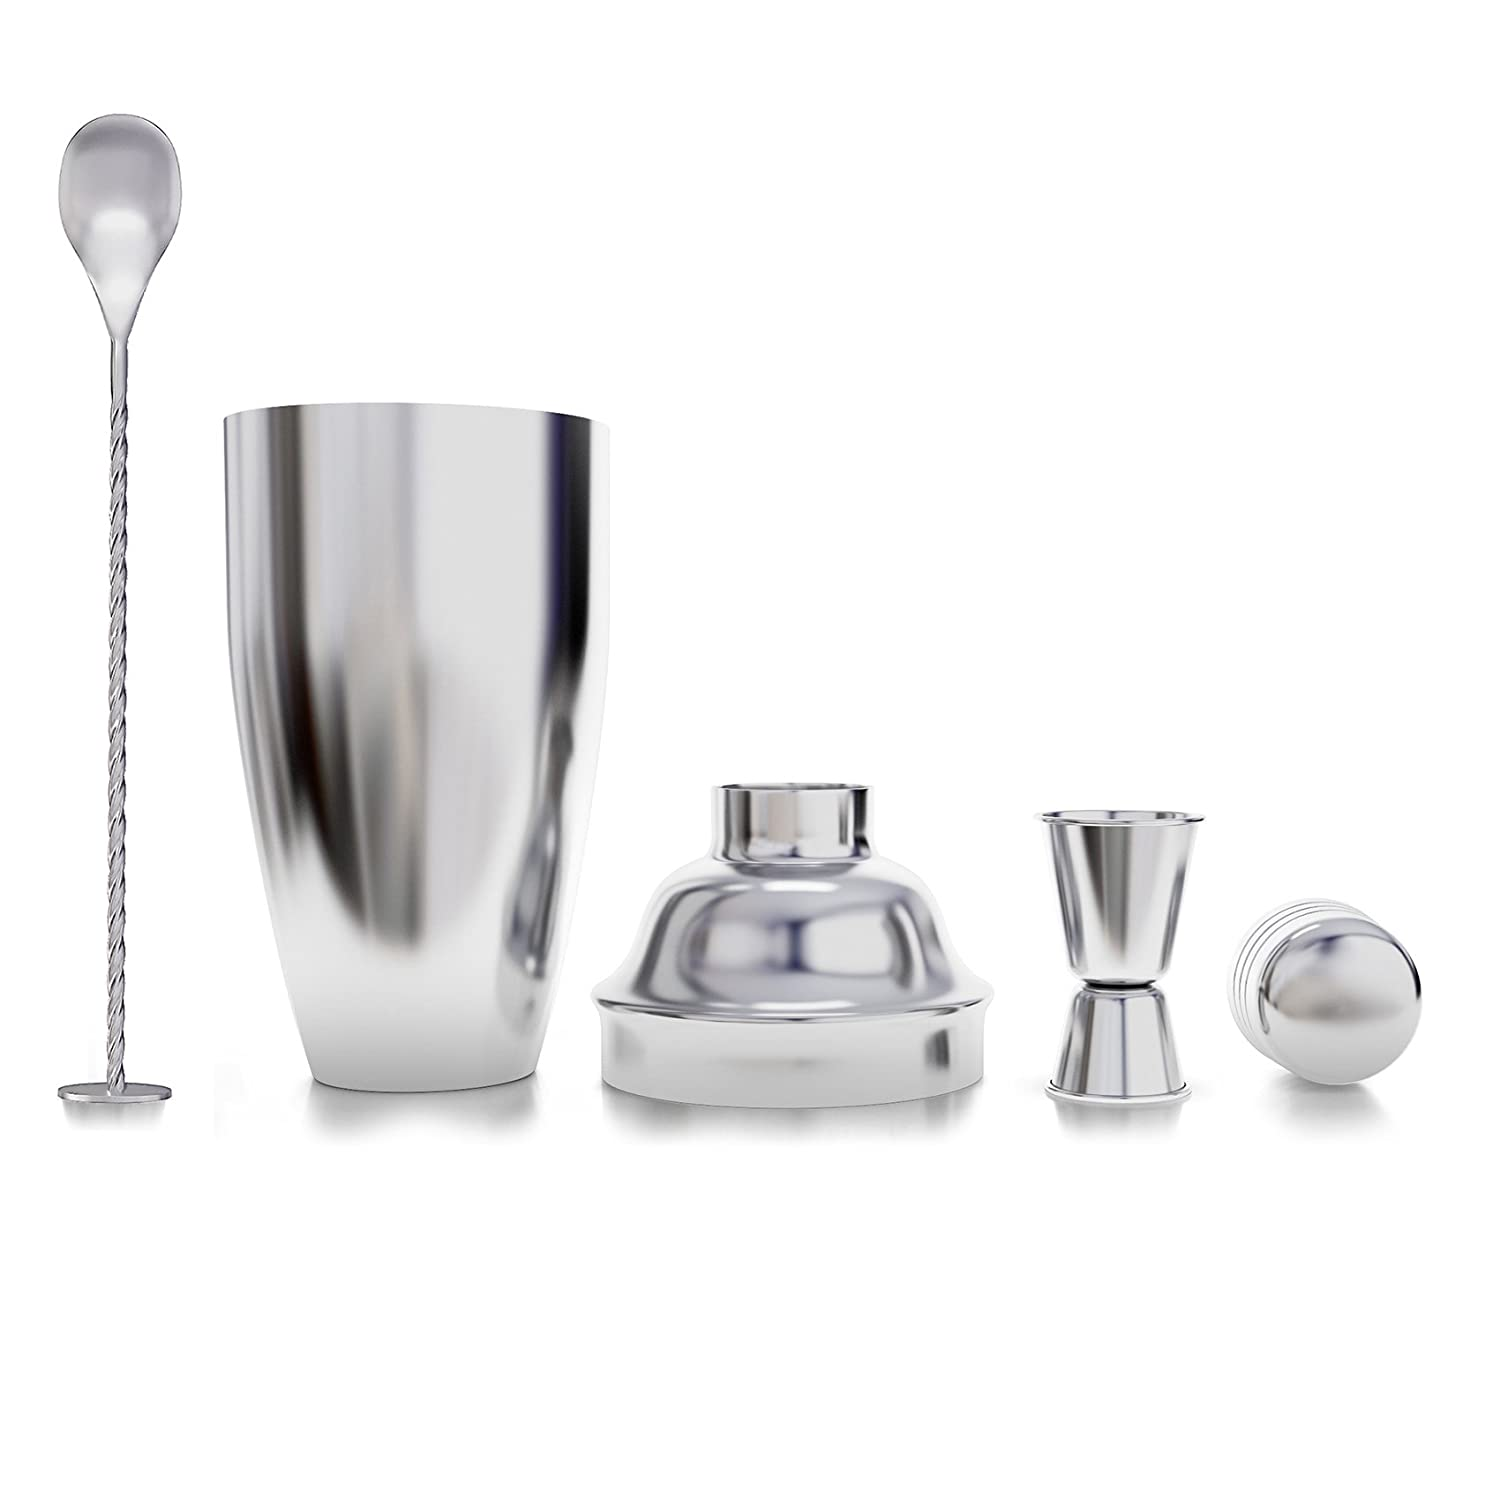 24 Ounce Cocktail Shaker Martini Kit with Measuring Jigger and Mixing Spoon